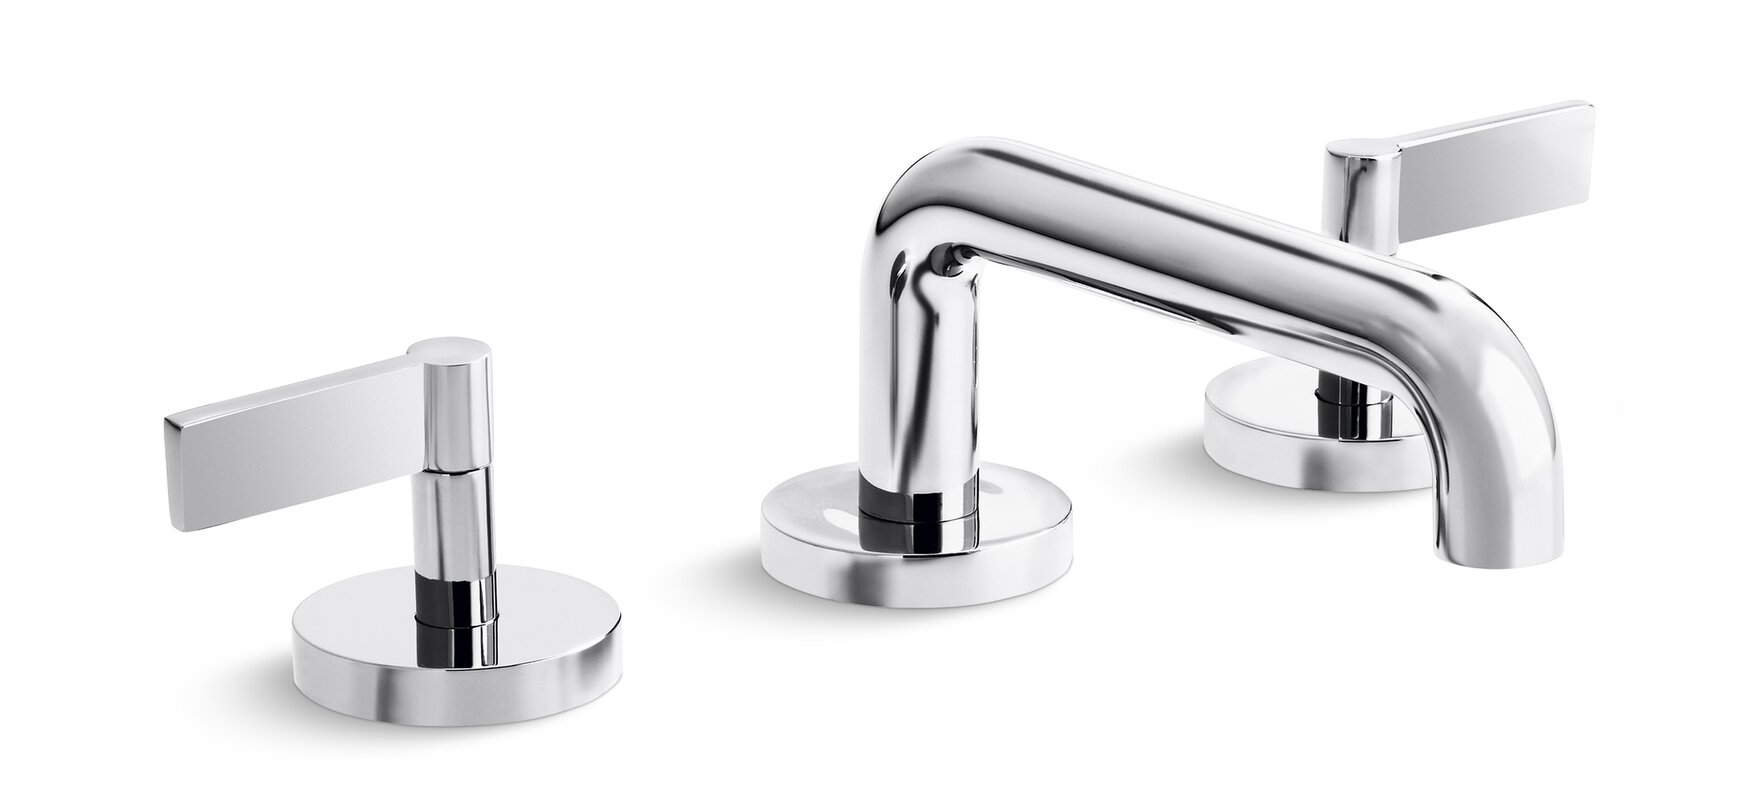 Kallista One Widespread Bathroom Faucet & Reviews | Wayfair